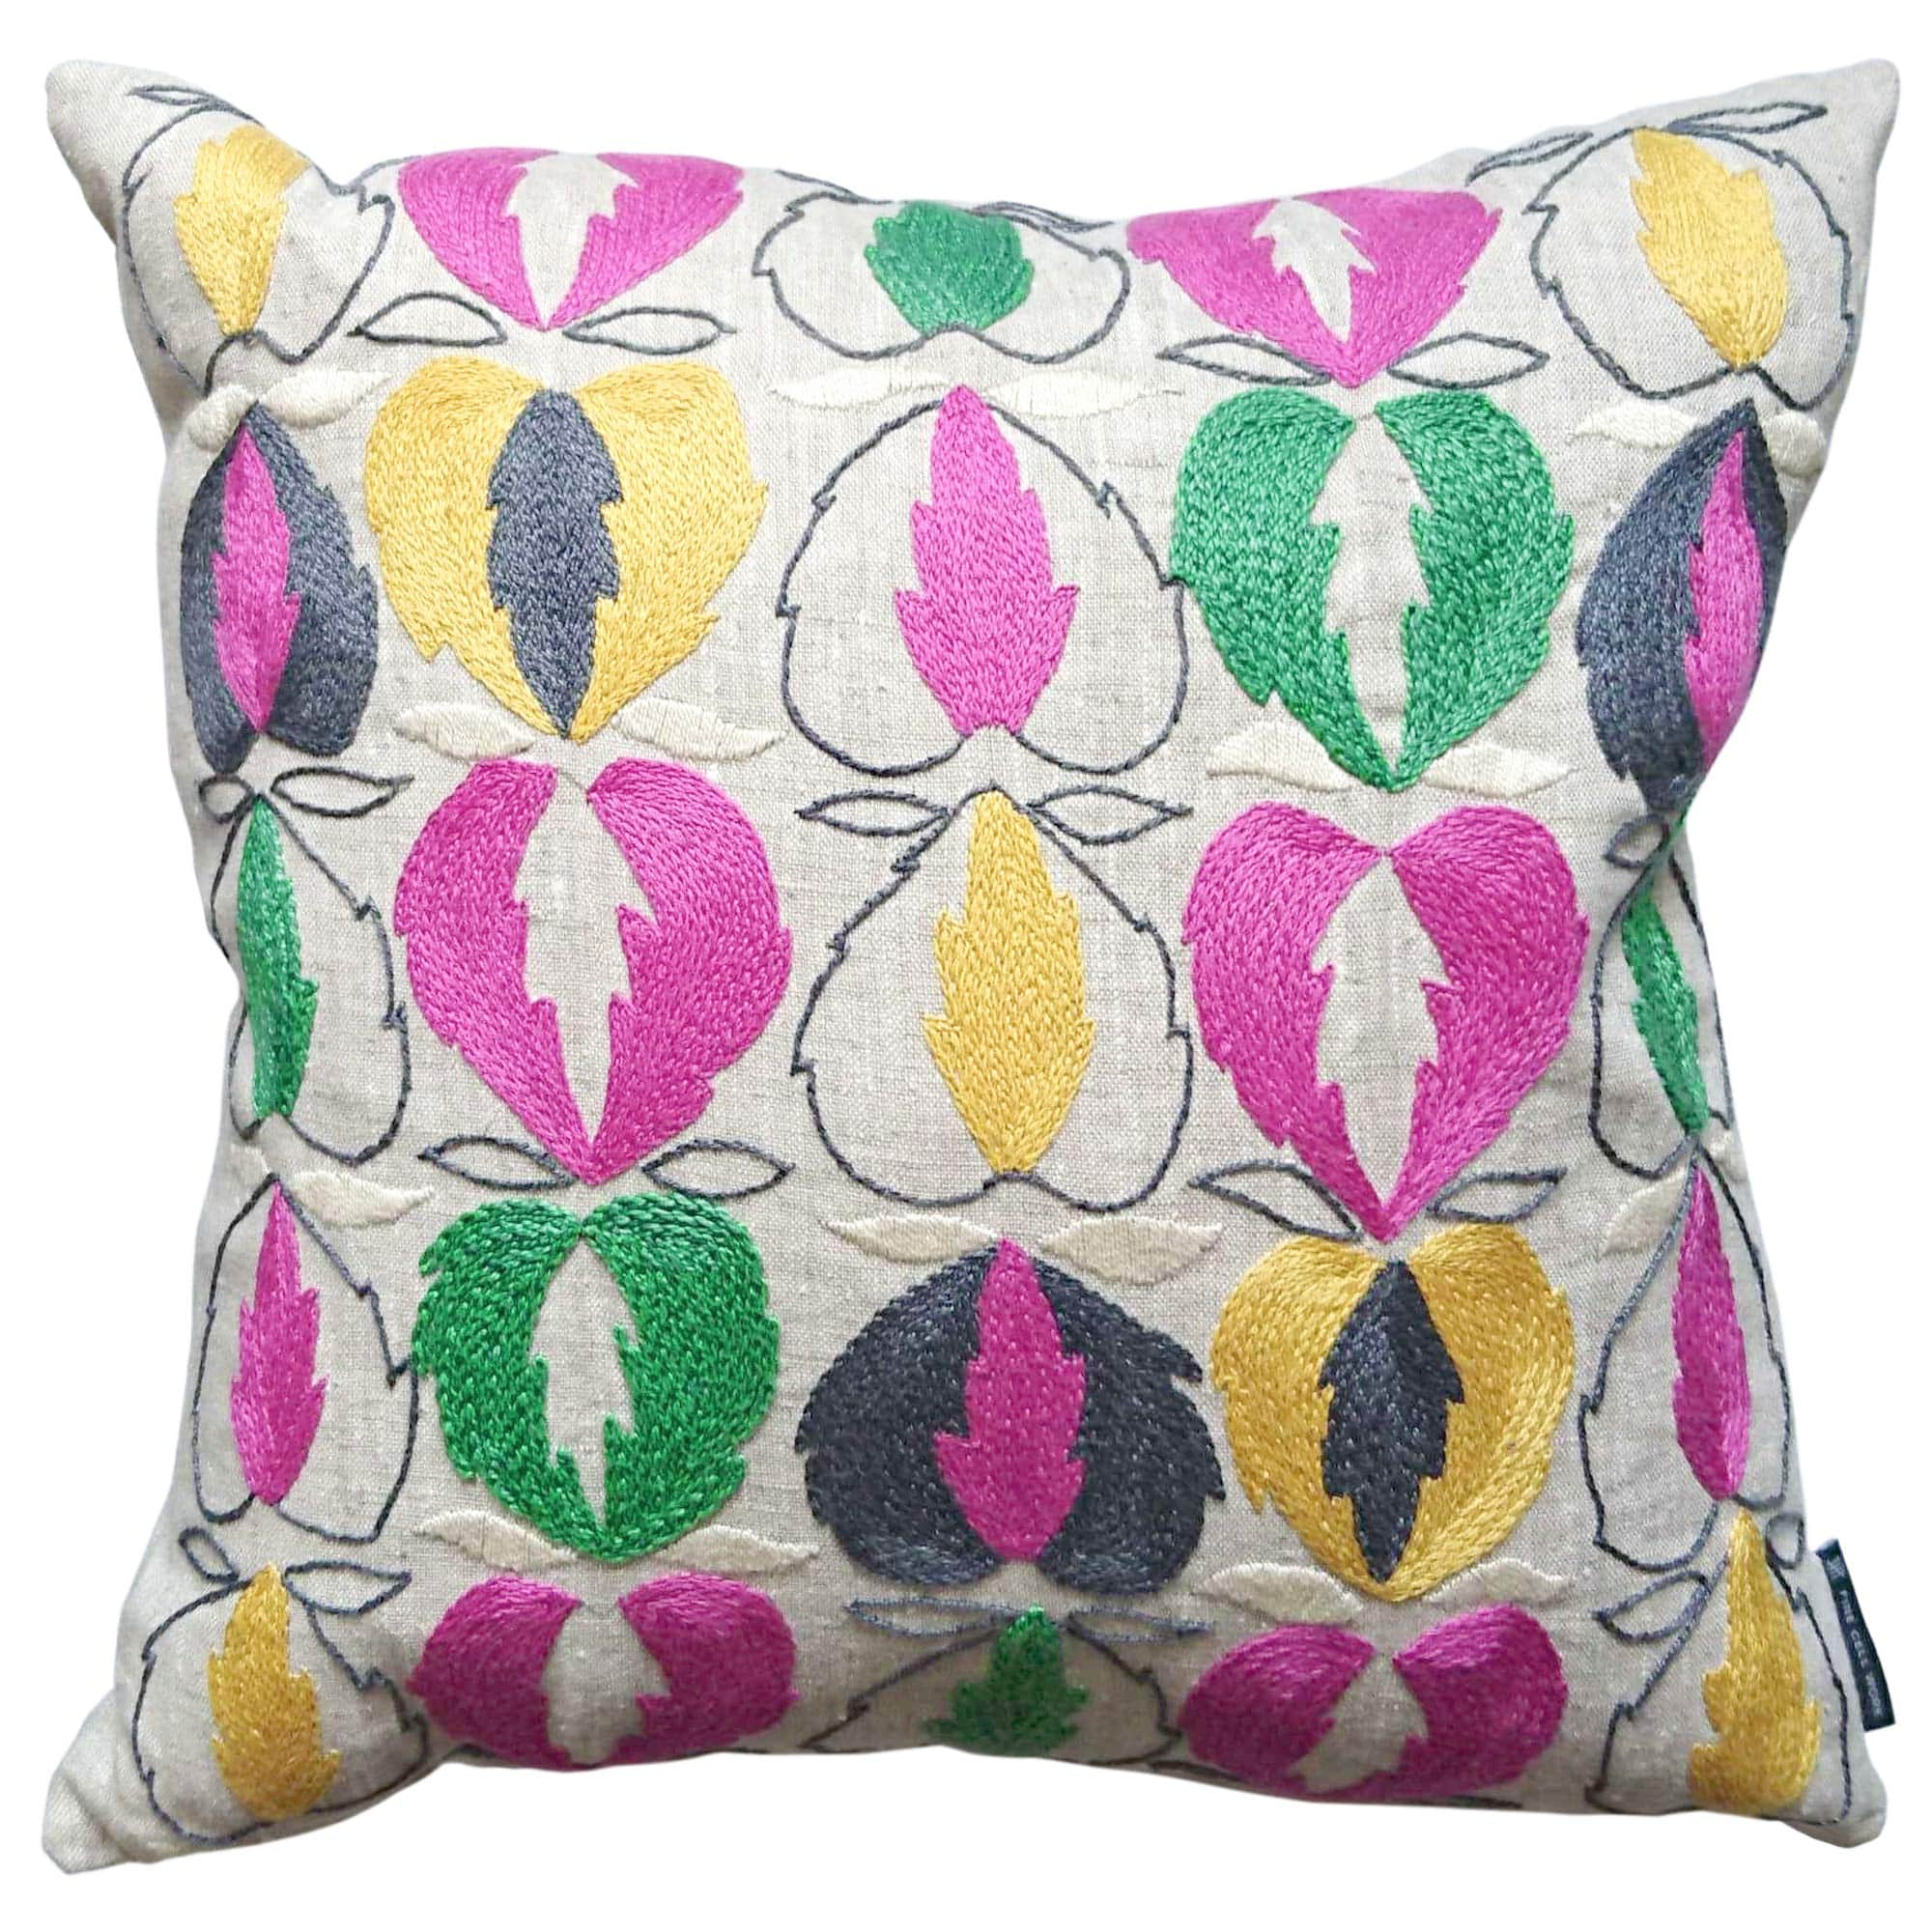 Kit Kemp Heart of Oak Linen Cushion Pink, Green and Grey